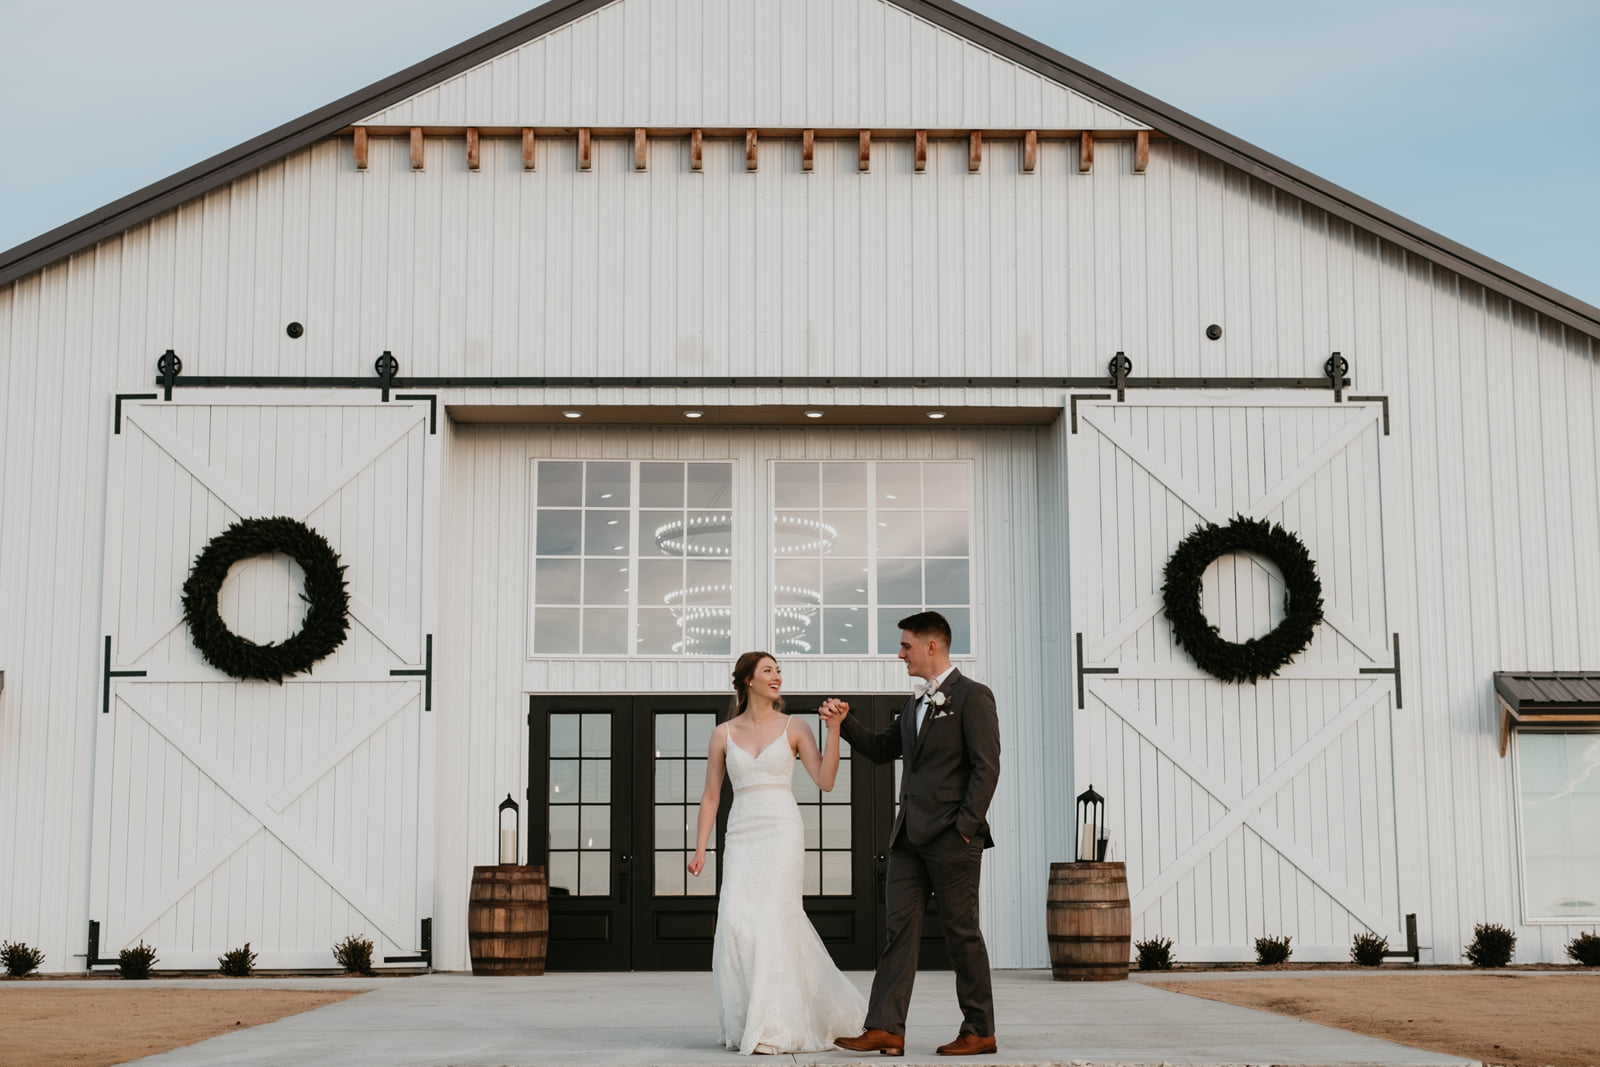 Sanburn Wichita Wedding - The Barn at Grace Hill-884.jpg